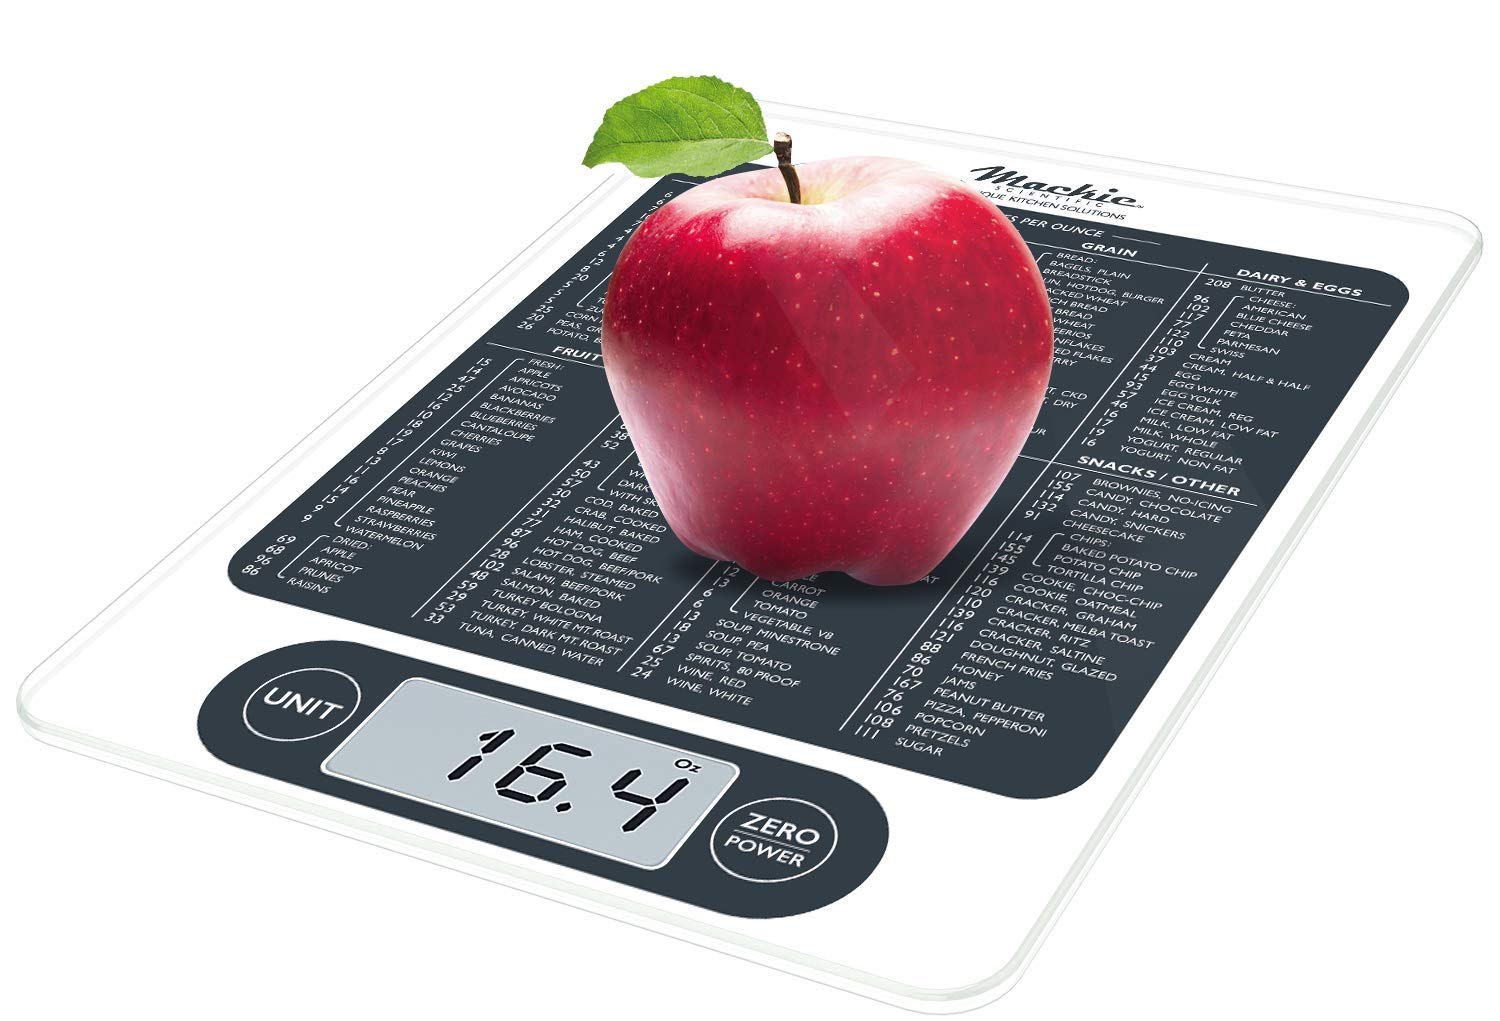 Mackie C19 Digital Kitchen Scale Food Scale and Multifunction Calorie Scale Highly Accurate Capacity 12 lbs 5.44kgs 4 min. Hold Before Powering Off